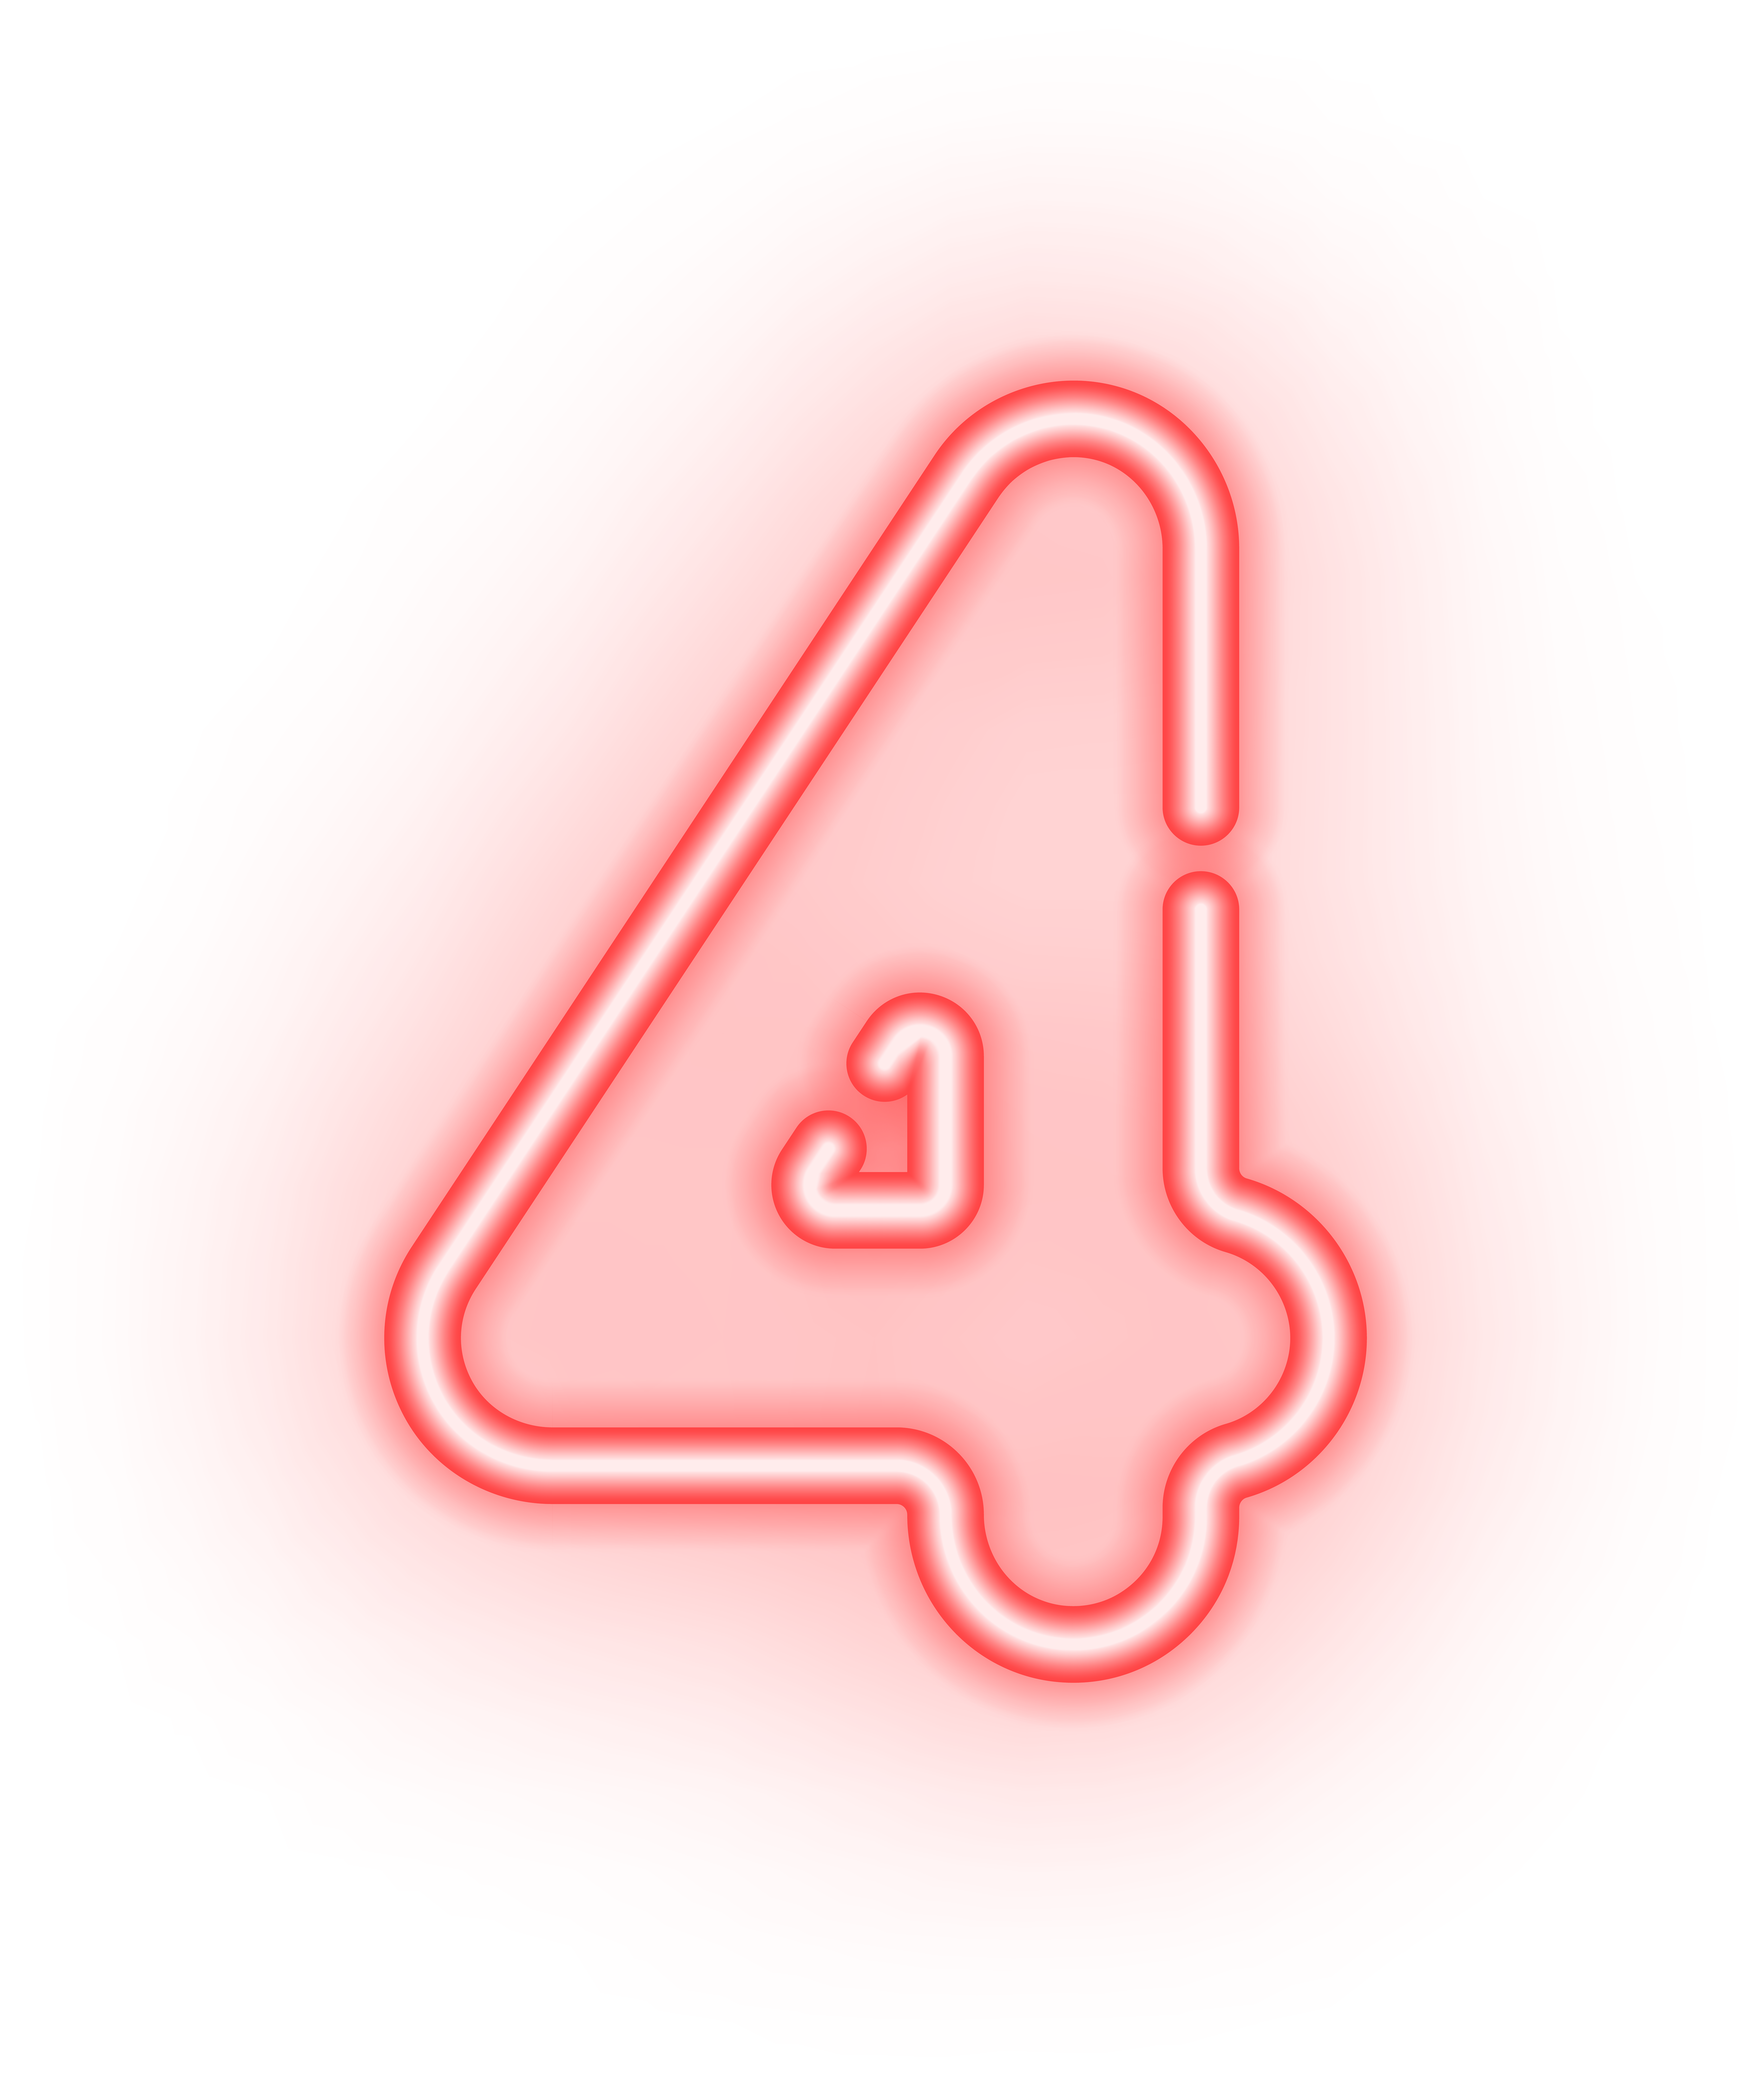 Number Four Neon Transparent PNG Image.